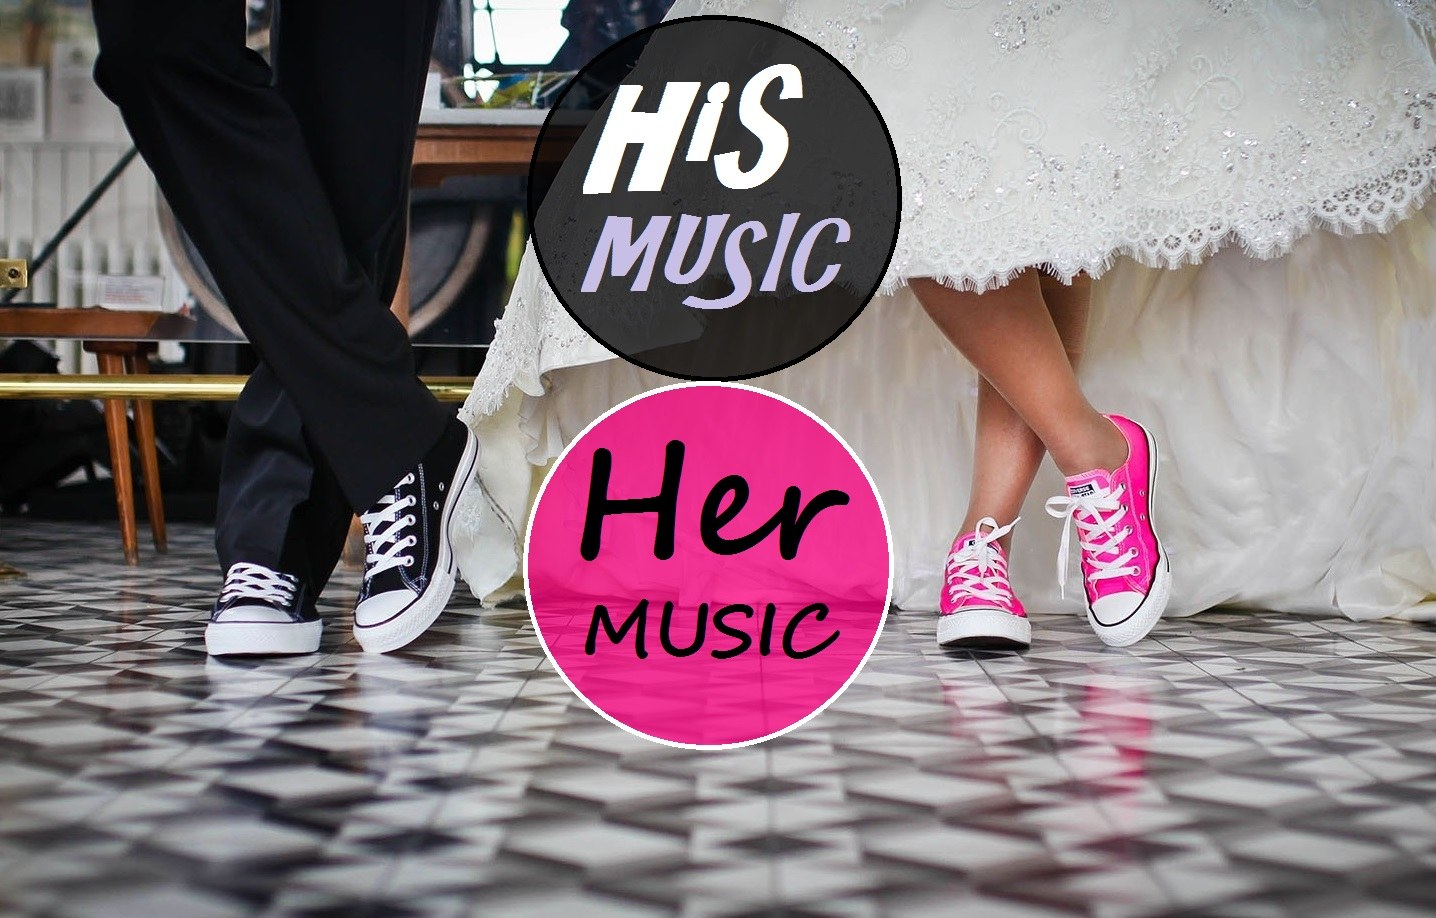 Best Wedding Music Top 200 wedding songs and hits made by Milwaukee Underground Productions DJ Service in Milwaukee